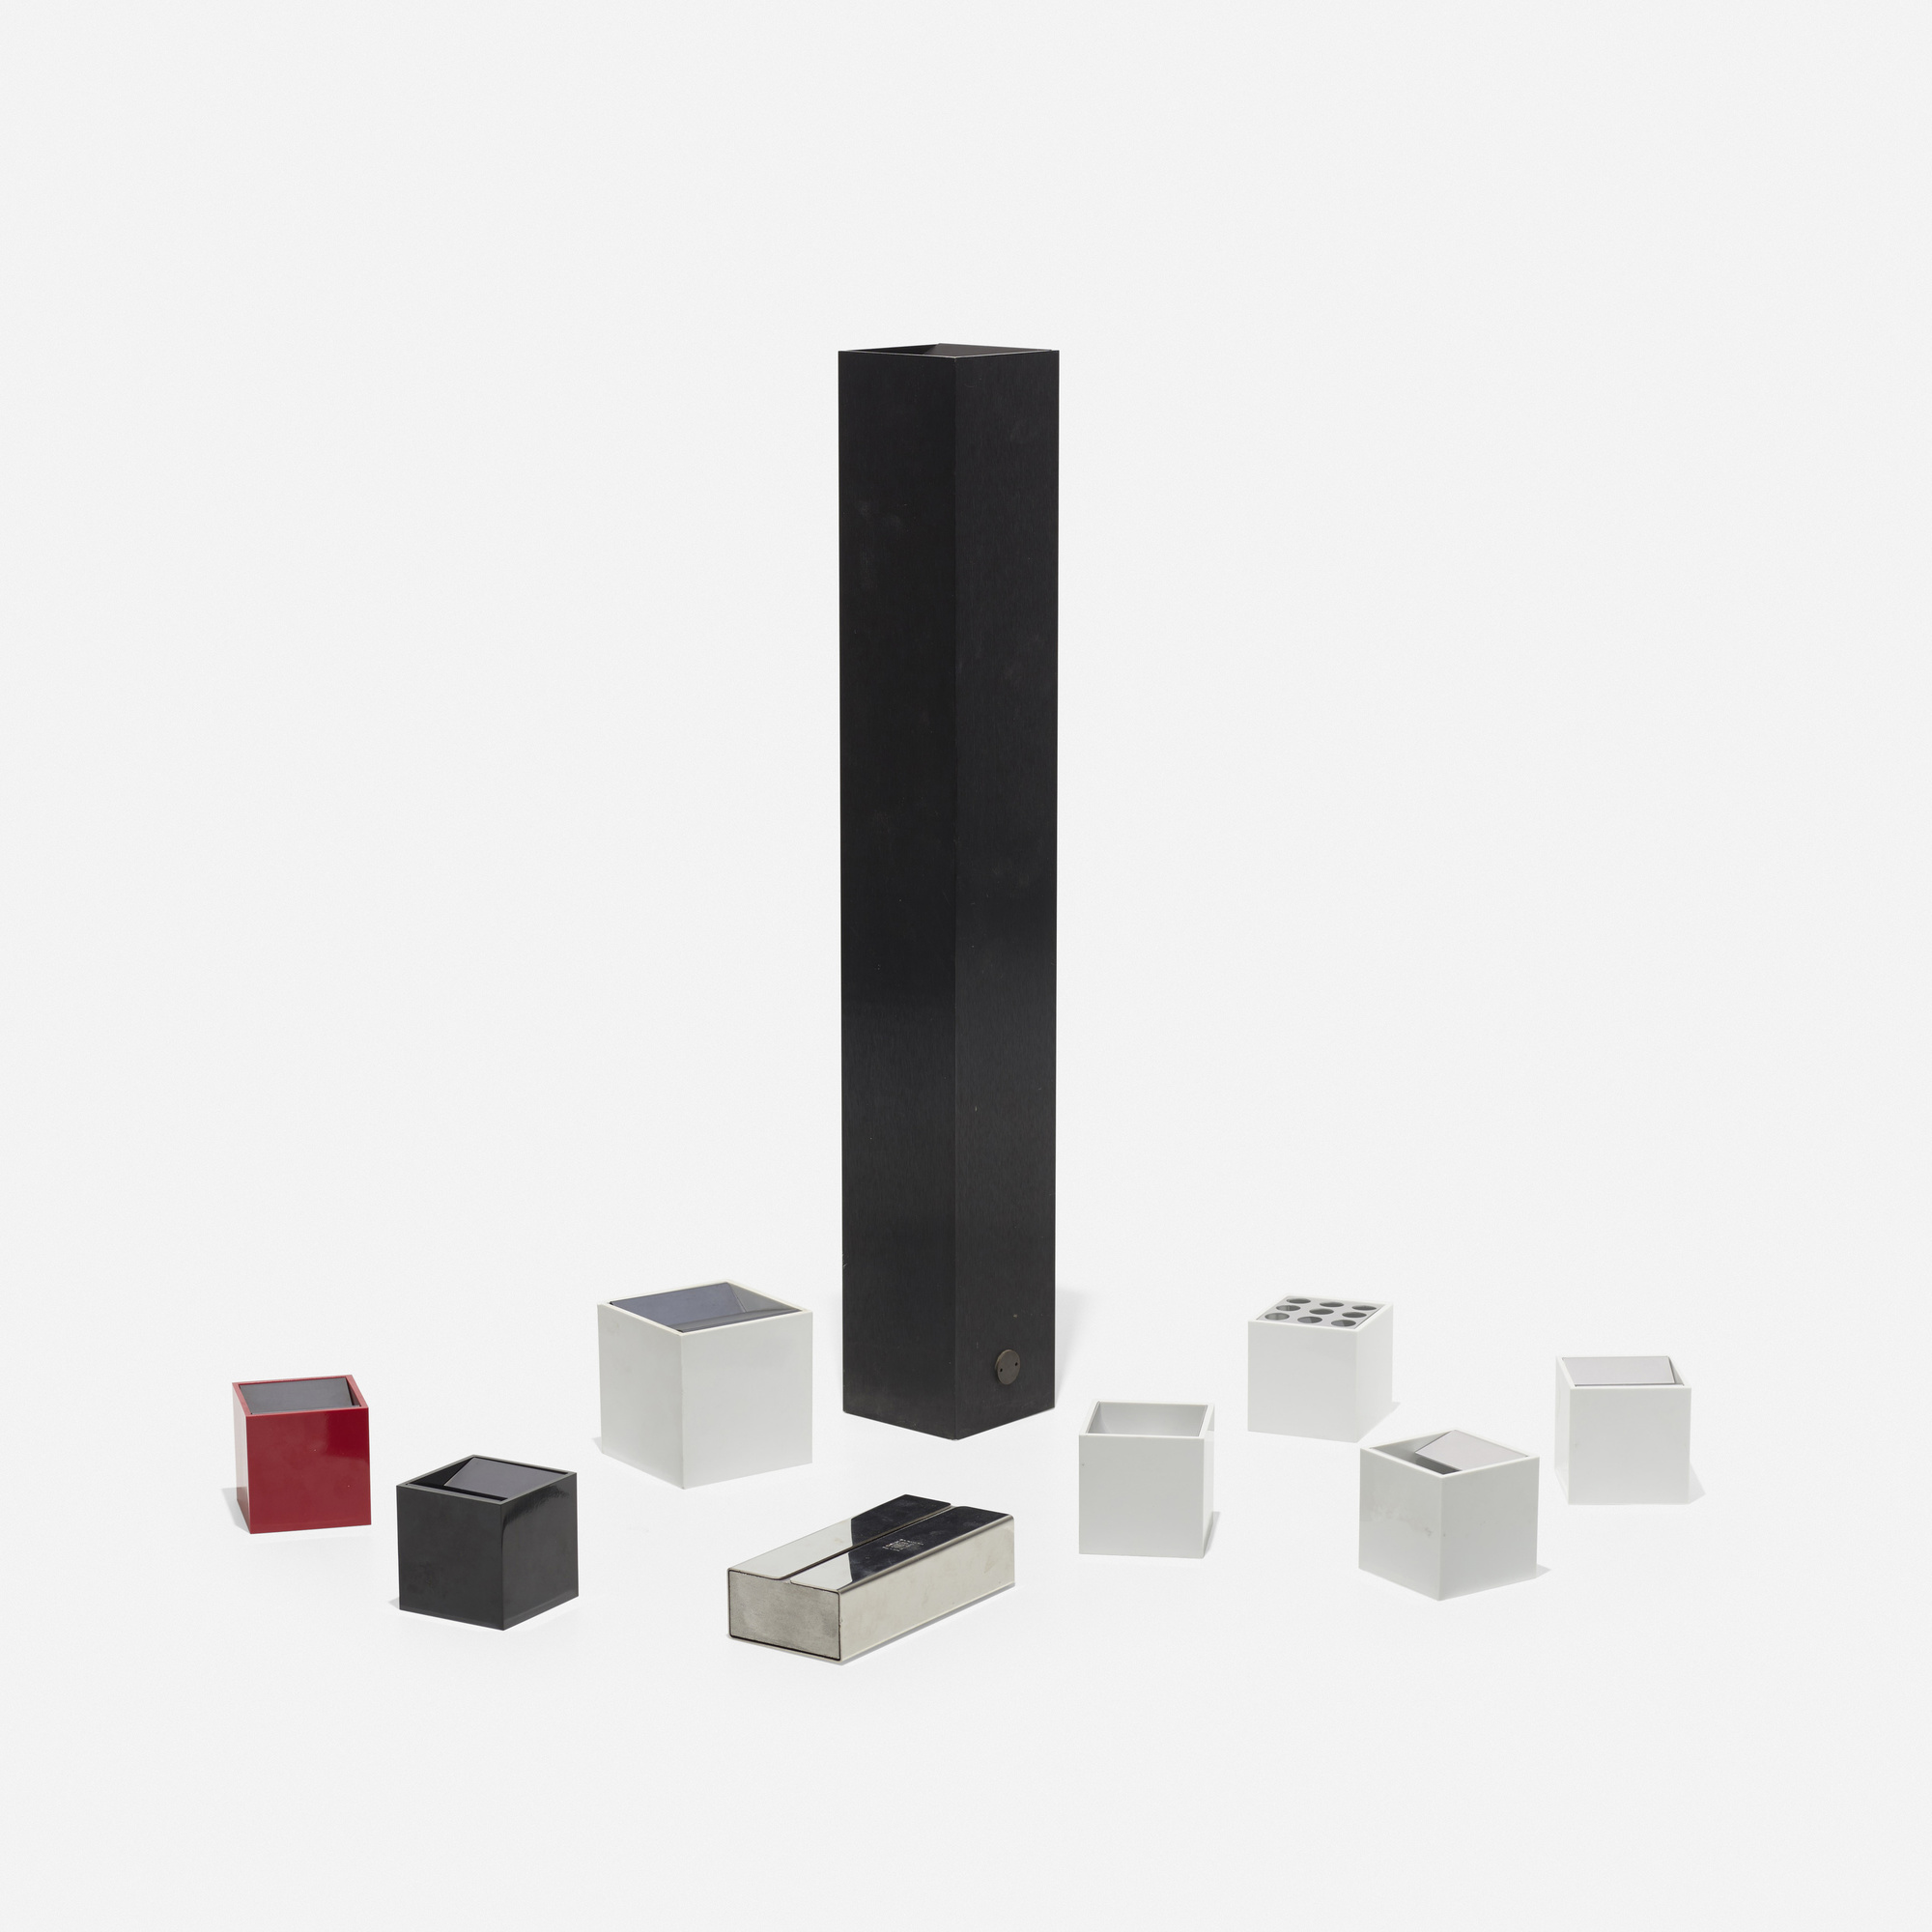 313: Bruno Munari / collection of nine table top accessories (2 of 2)